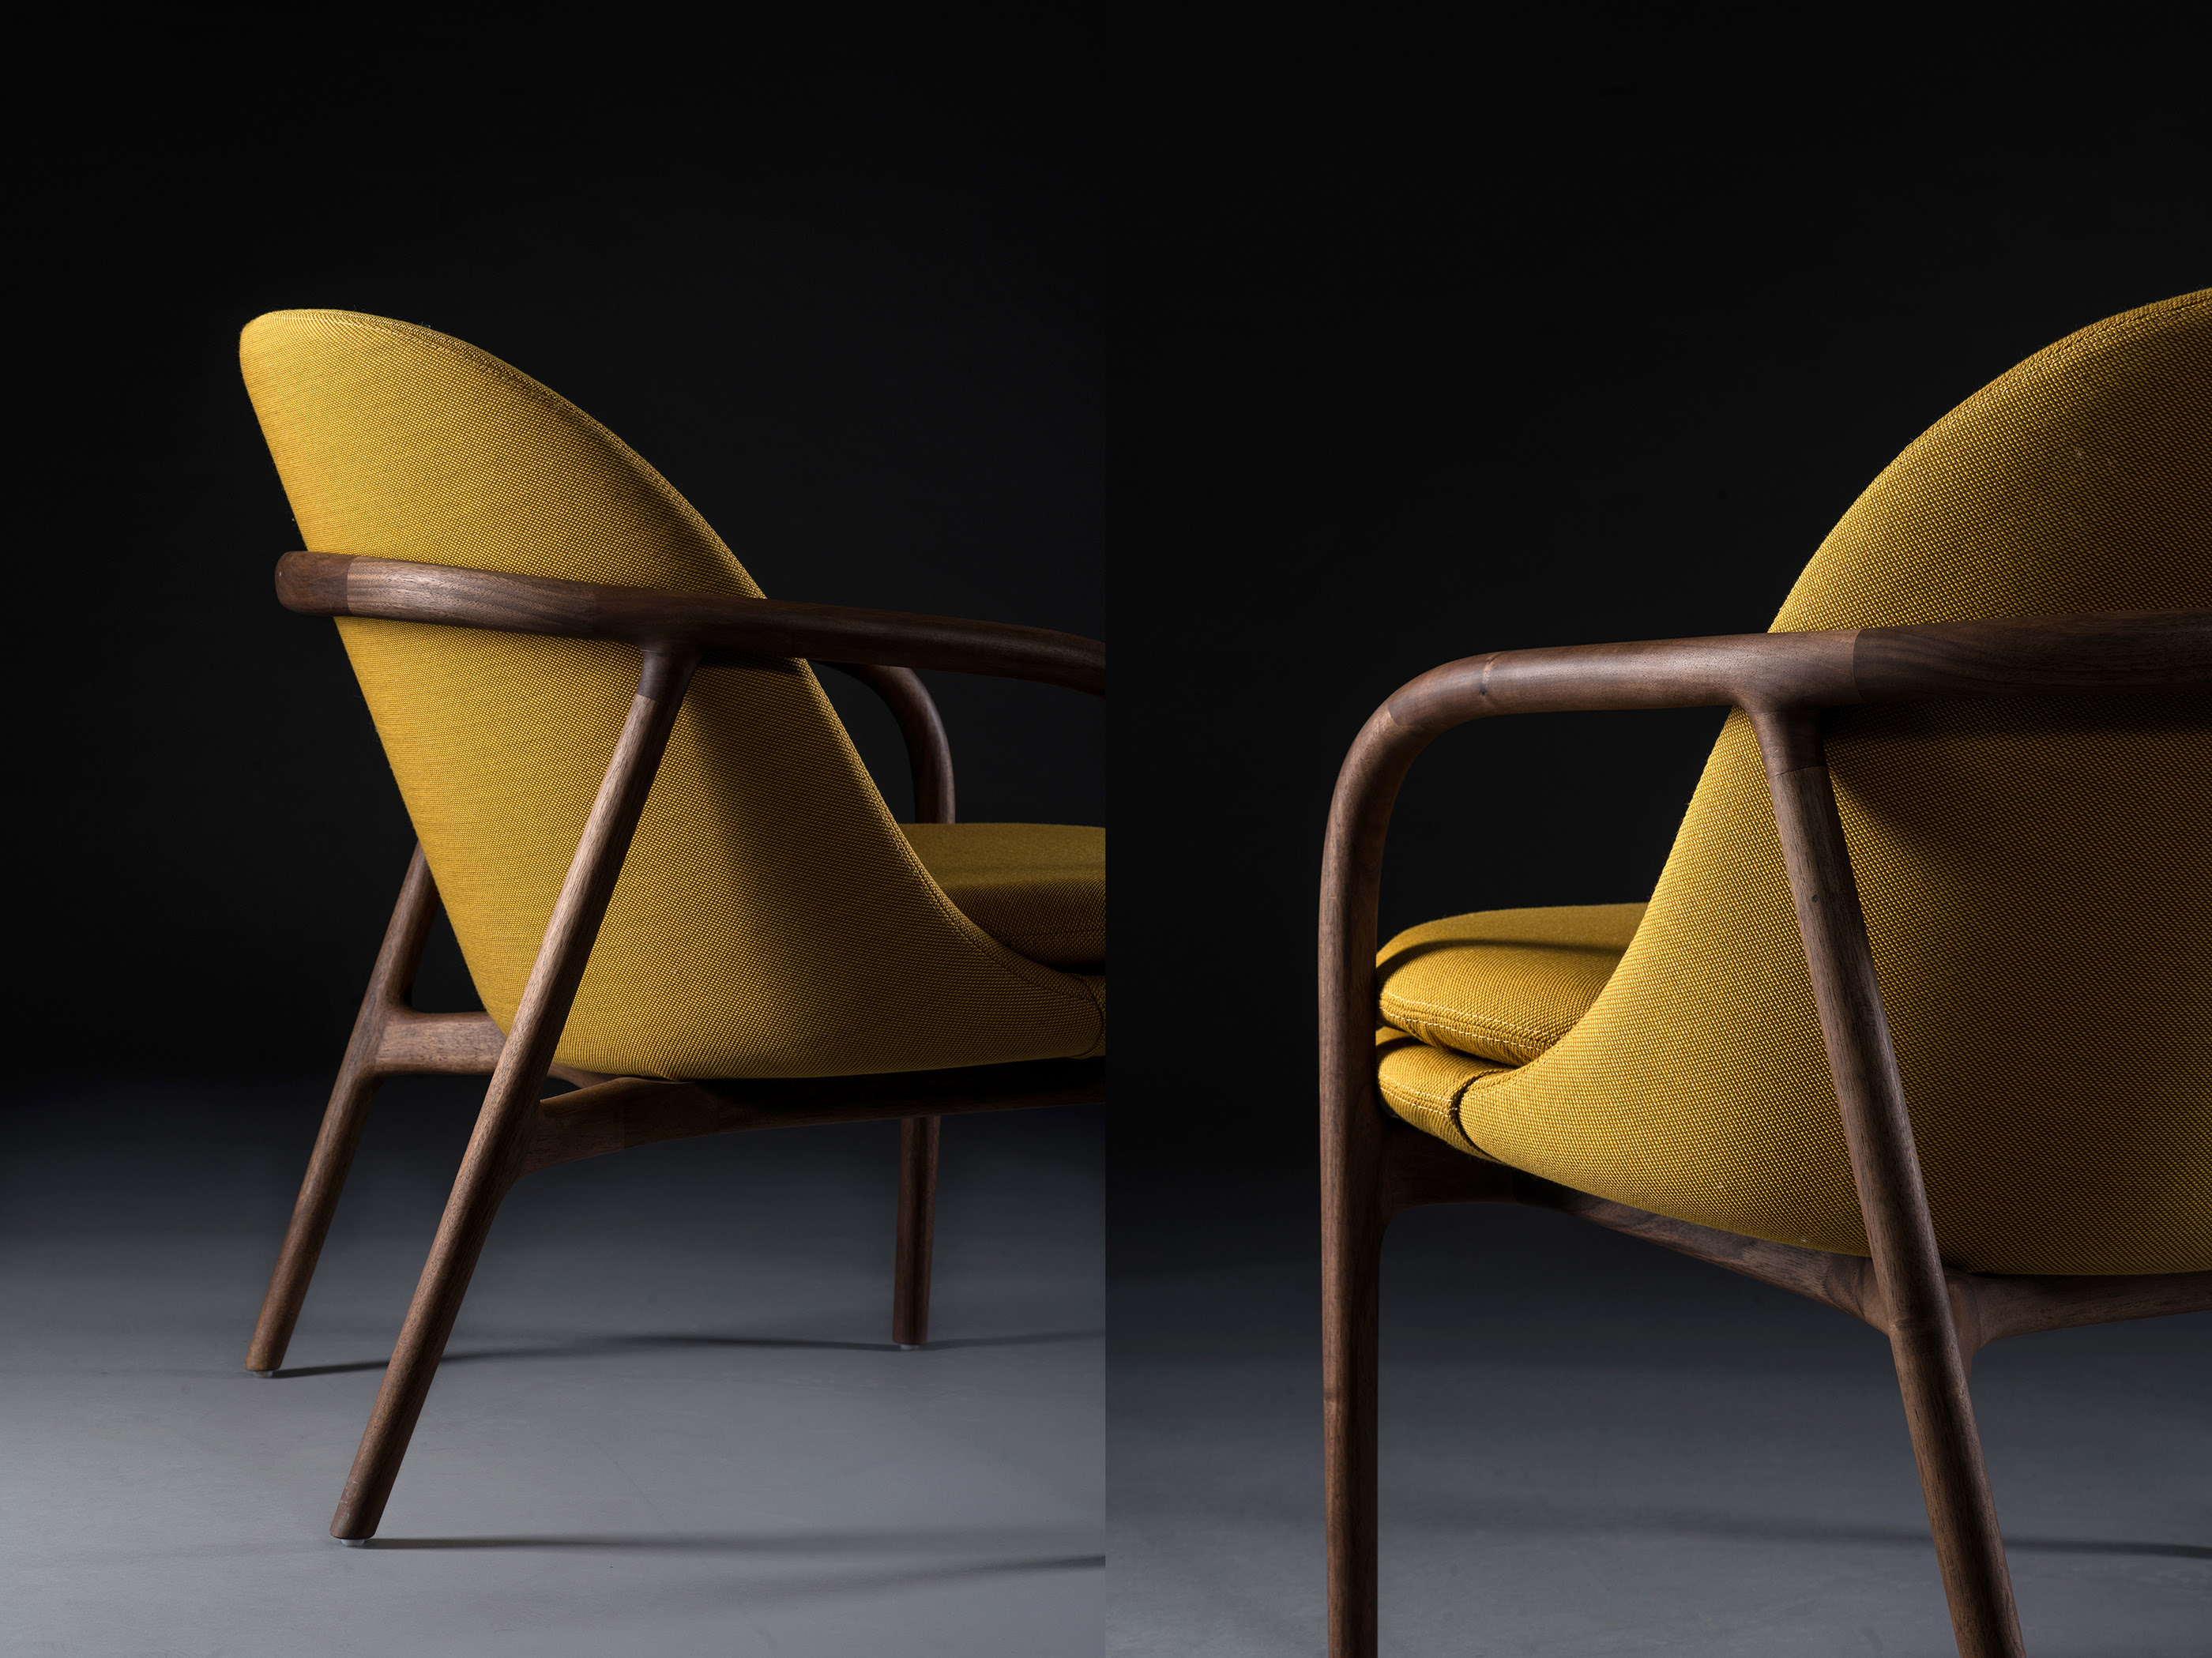 Wondrous Neva Lounge Collection On Behance Pabps2019 Chair Design Images Pabps2019Com